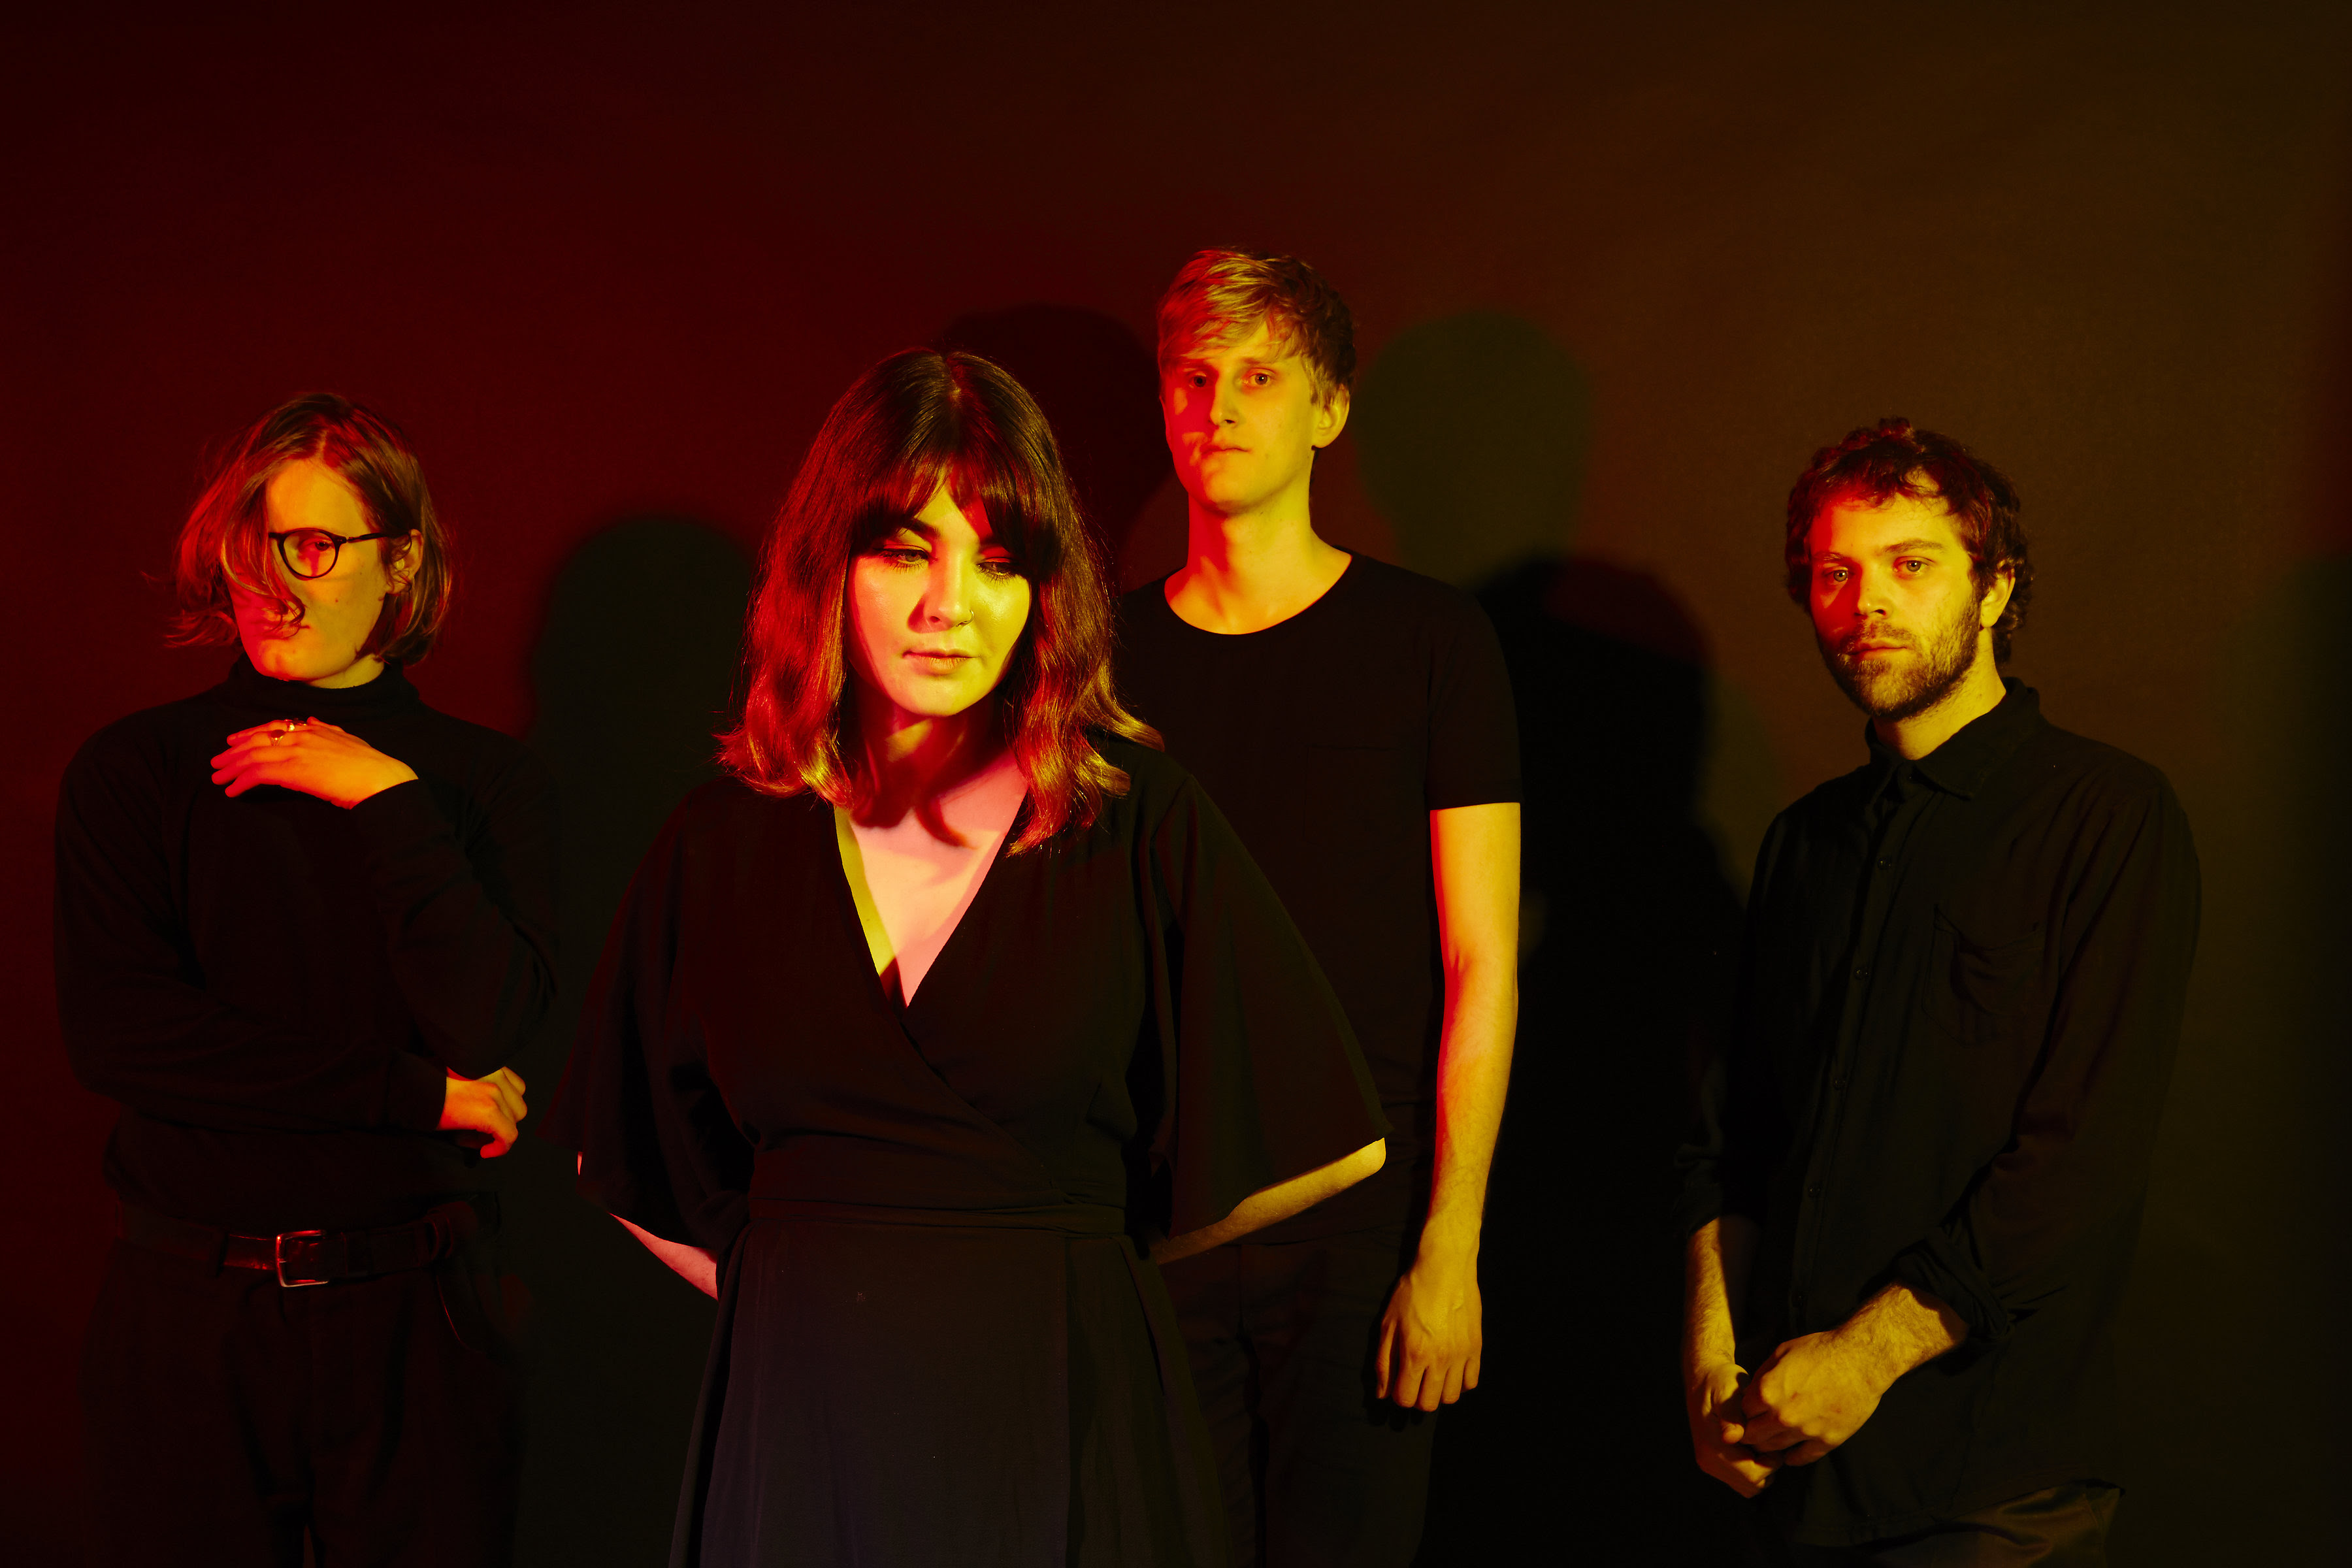 """""""Depths (Pt. I)"""" by Yumi Zouma is Northern Transmissions' 'Song of the Day'."""